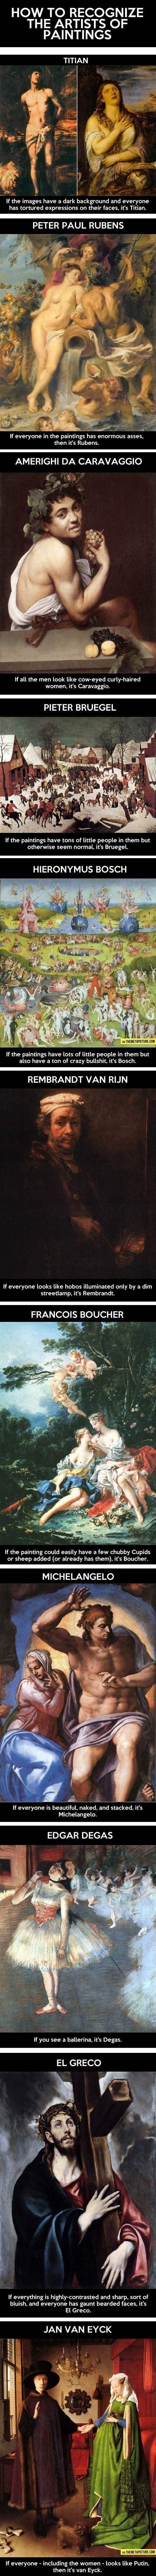 An  amusing guide to recognise the artist